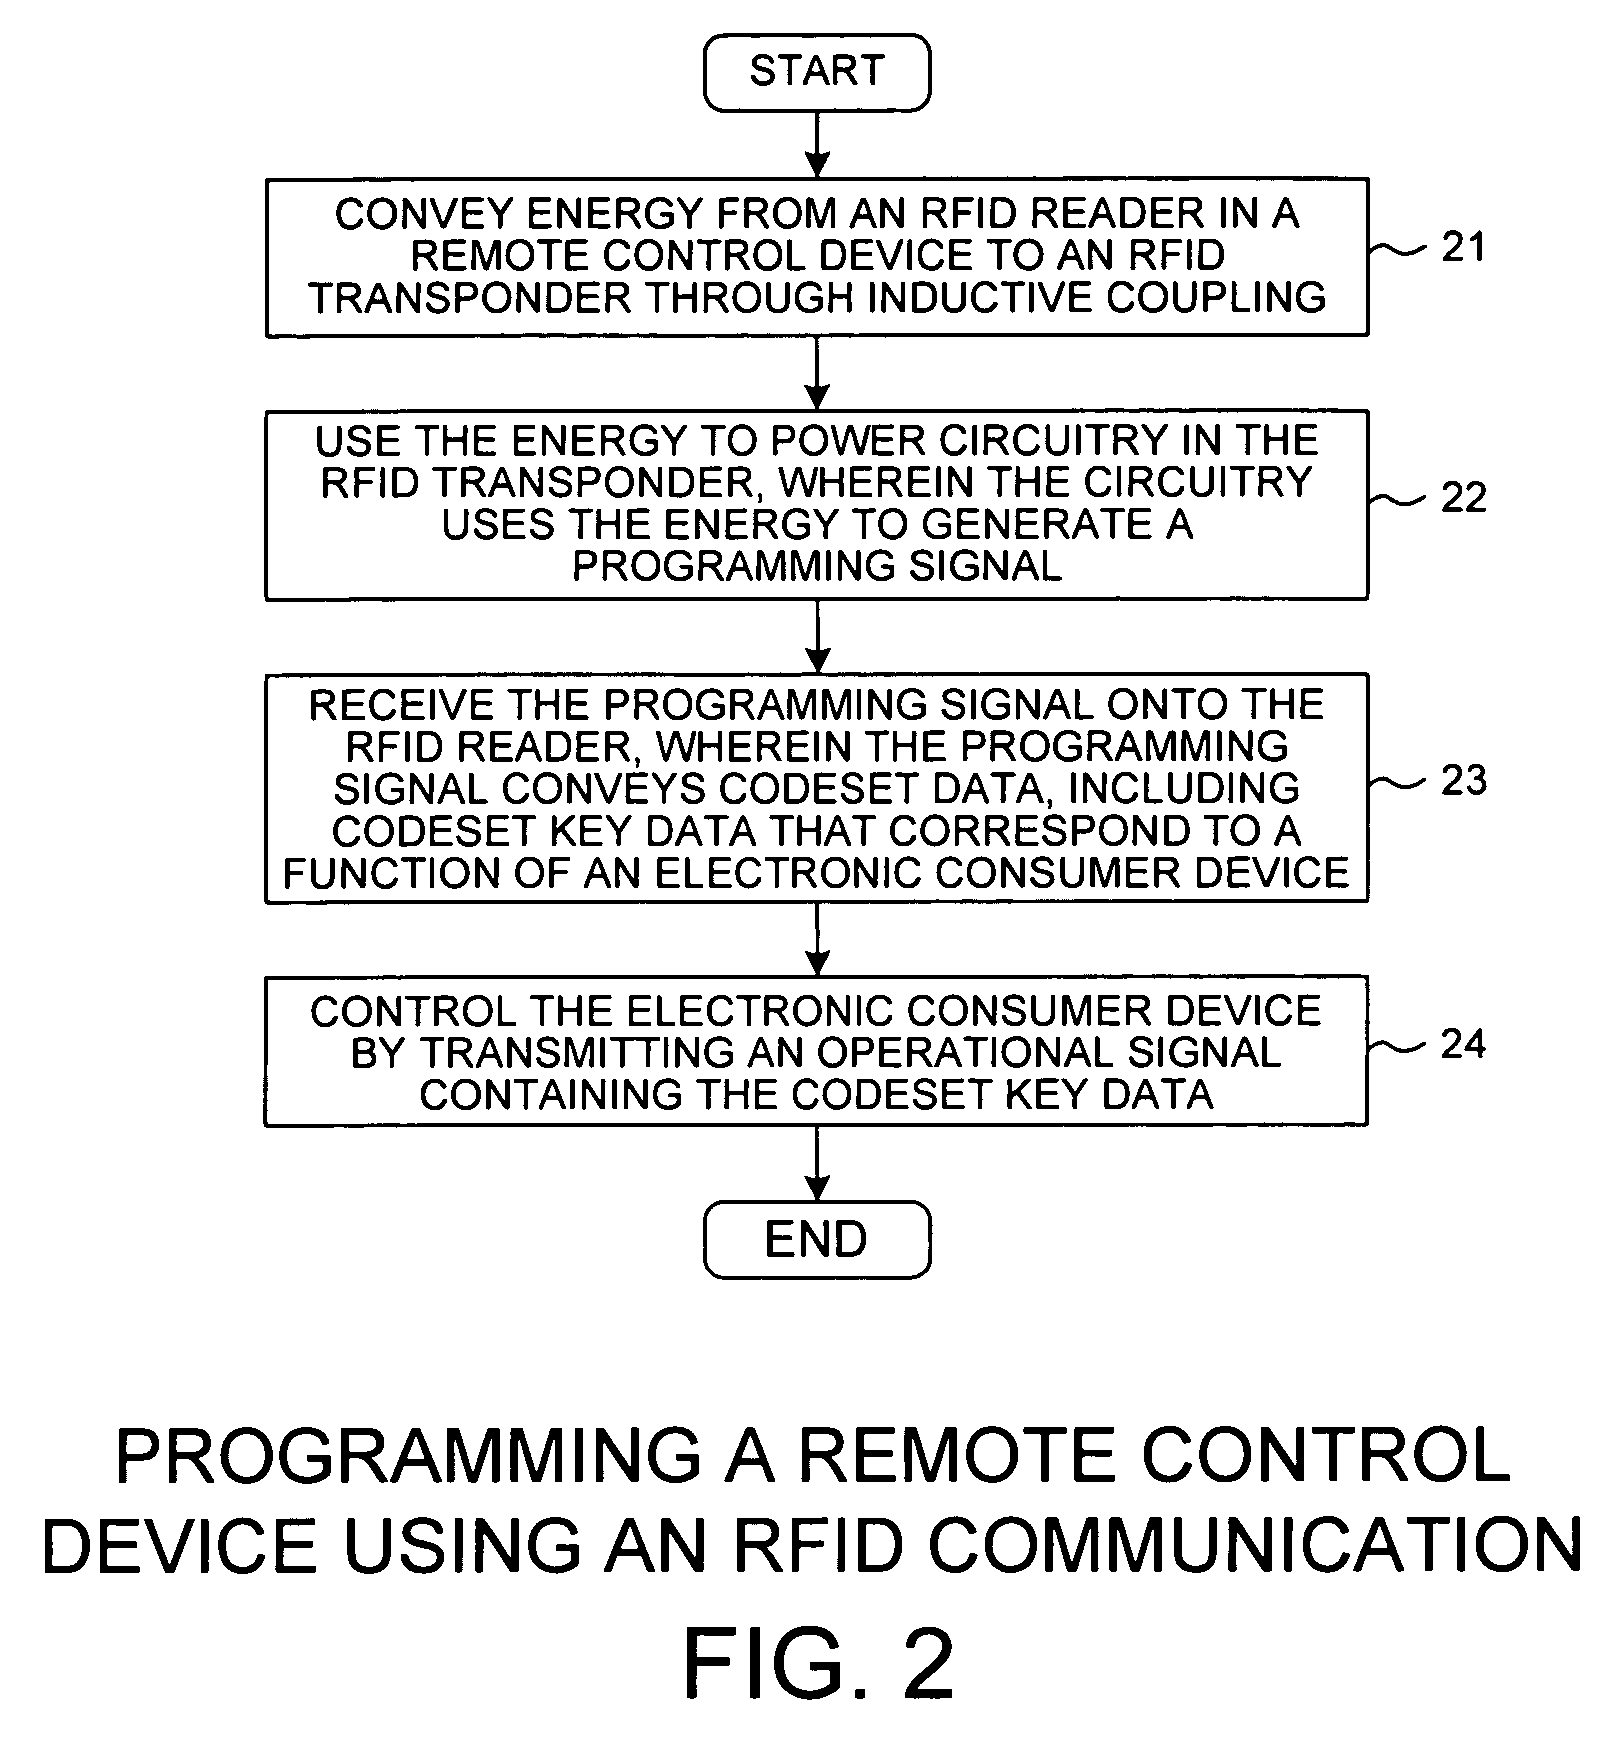 Us7116229b1 Programming A Remote Control Device Using Rfid Radio Link And Ask Amplitude Shift Keying Modulation Technology Google Patents